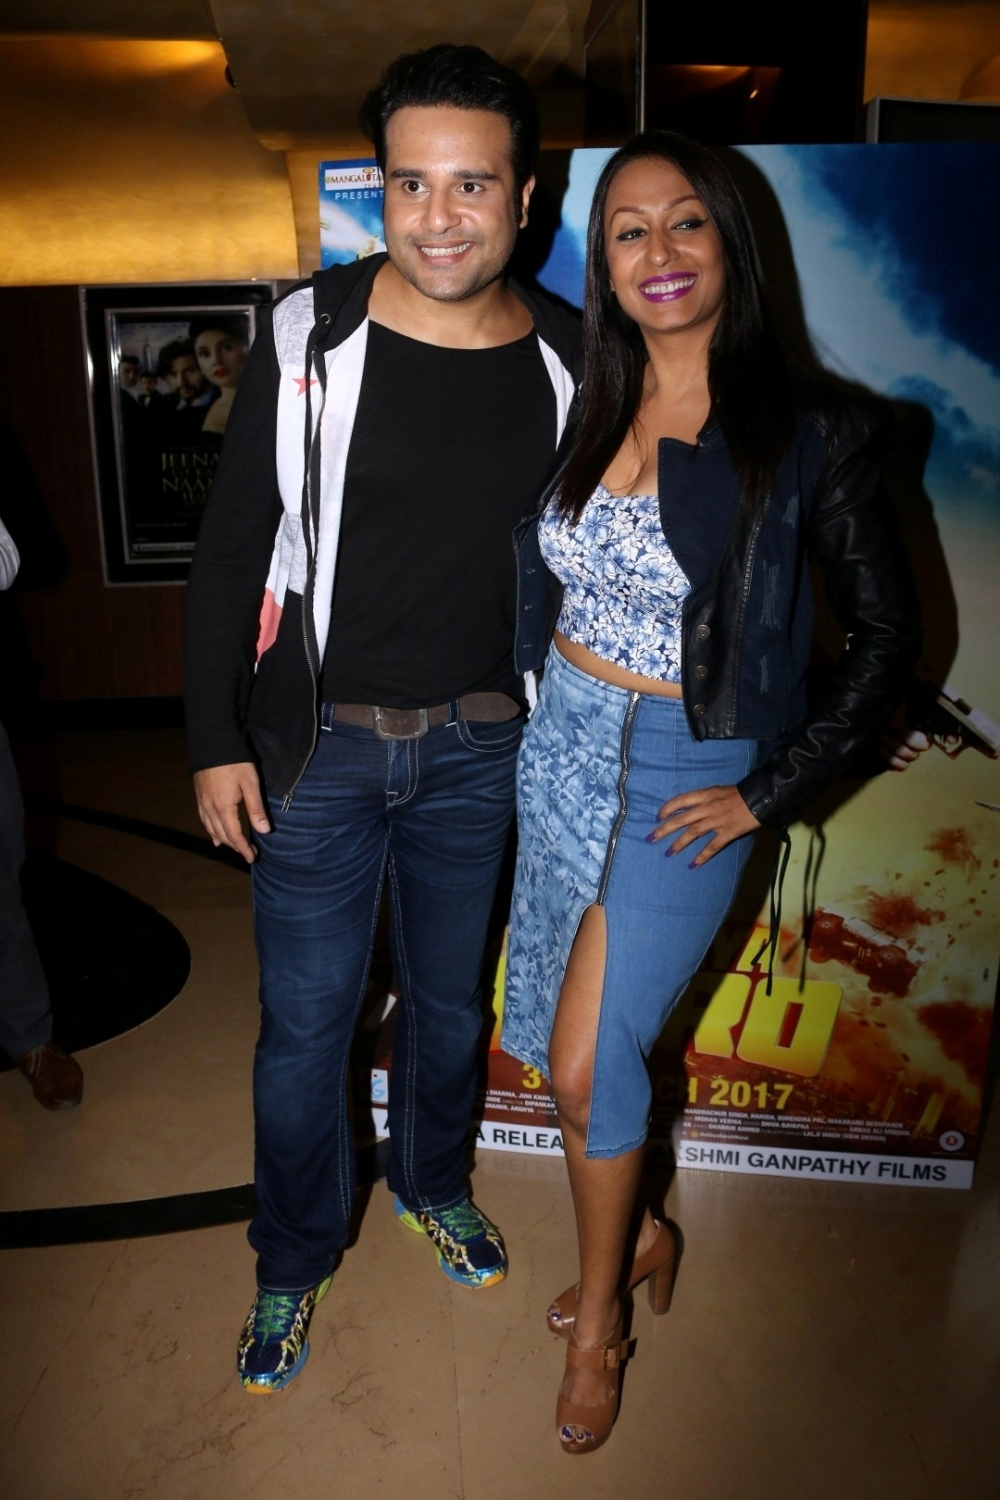 Mumbai:  Actors Krishna Abhishek and Kashmira Shah during the trailer launch of film Aa Gaya Hero in Mumbai on Feb 1, 2017. (Photo: IANS)